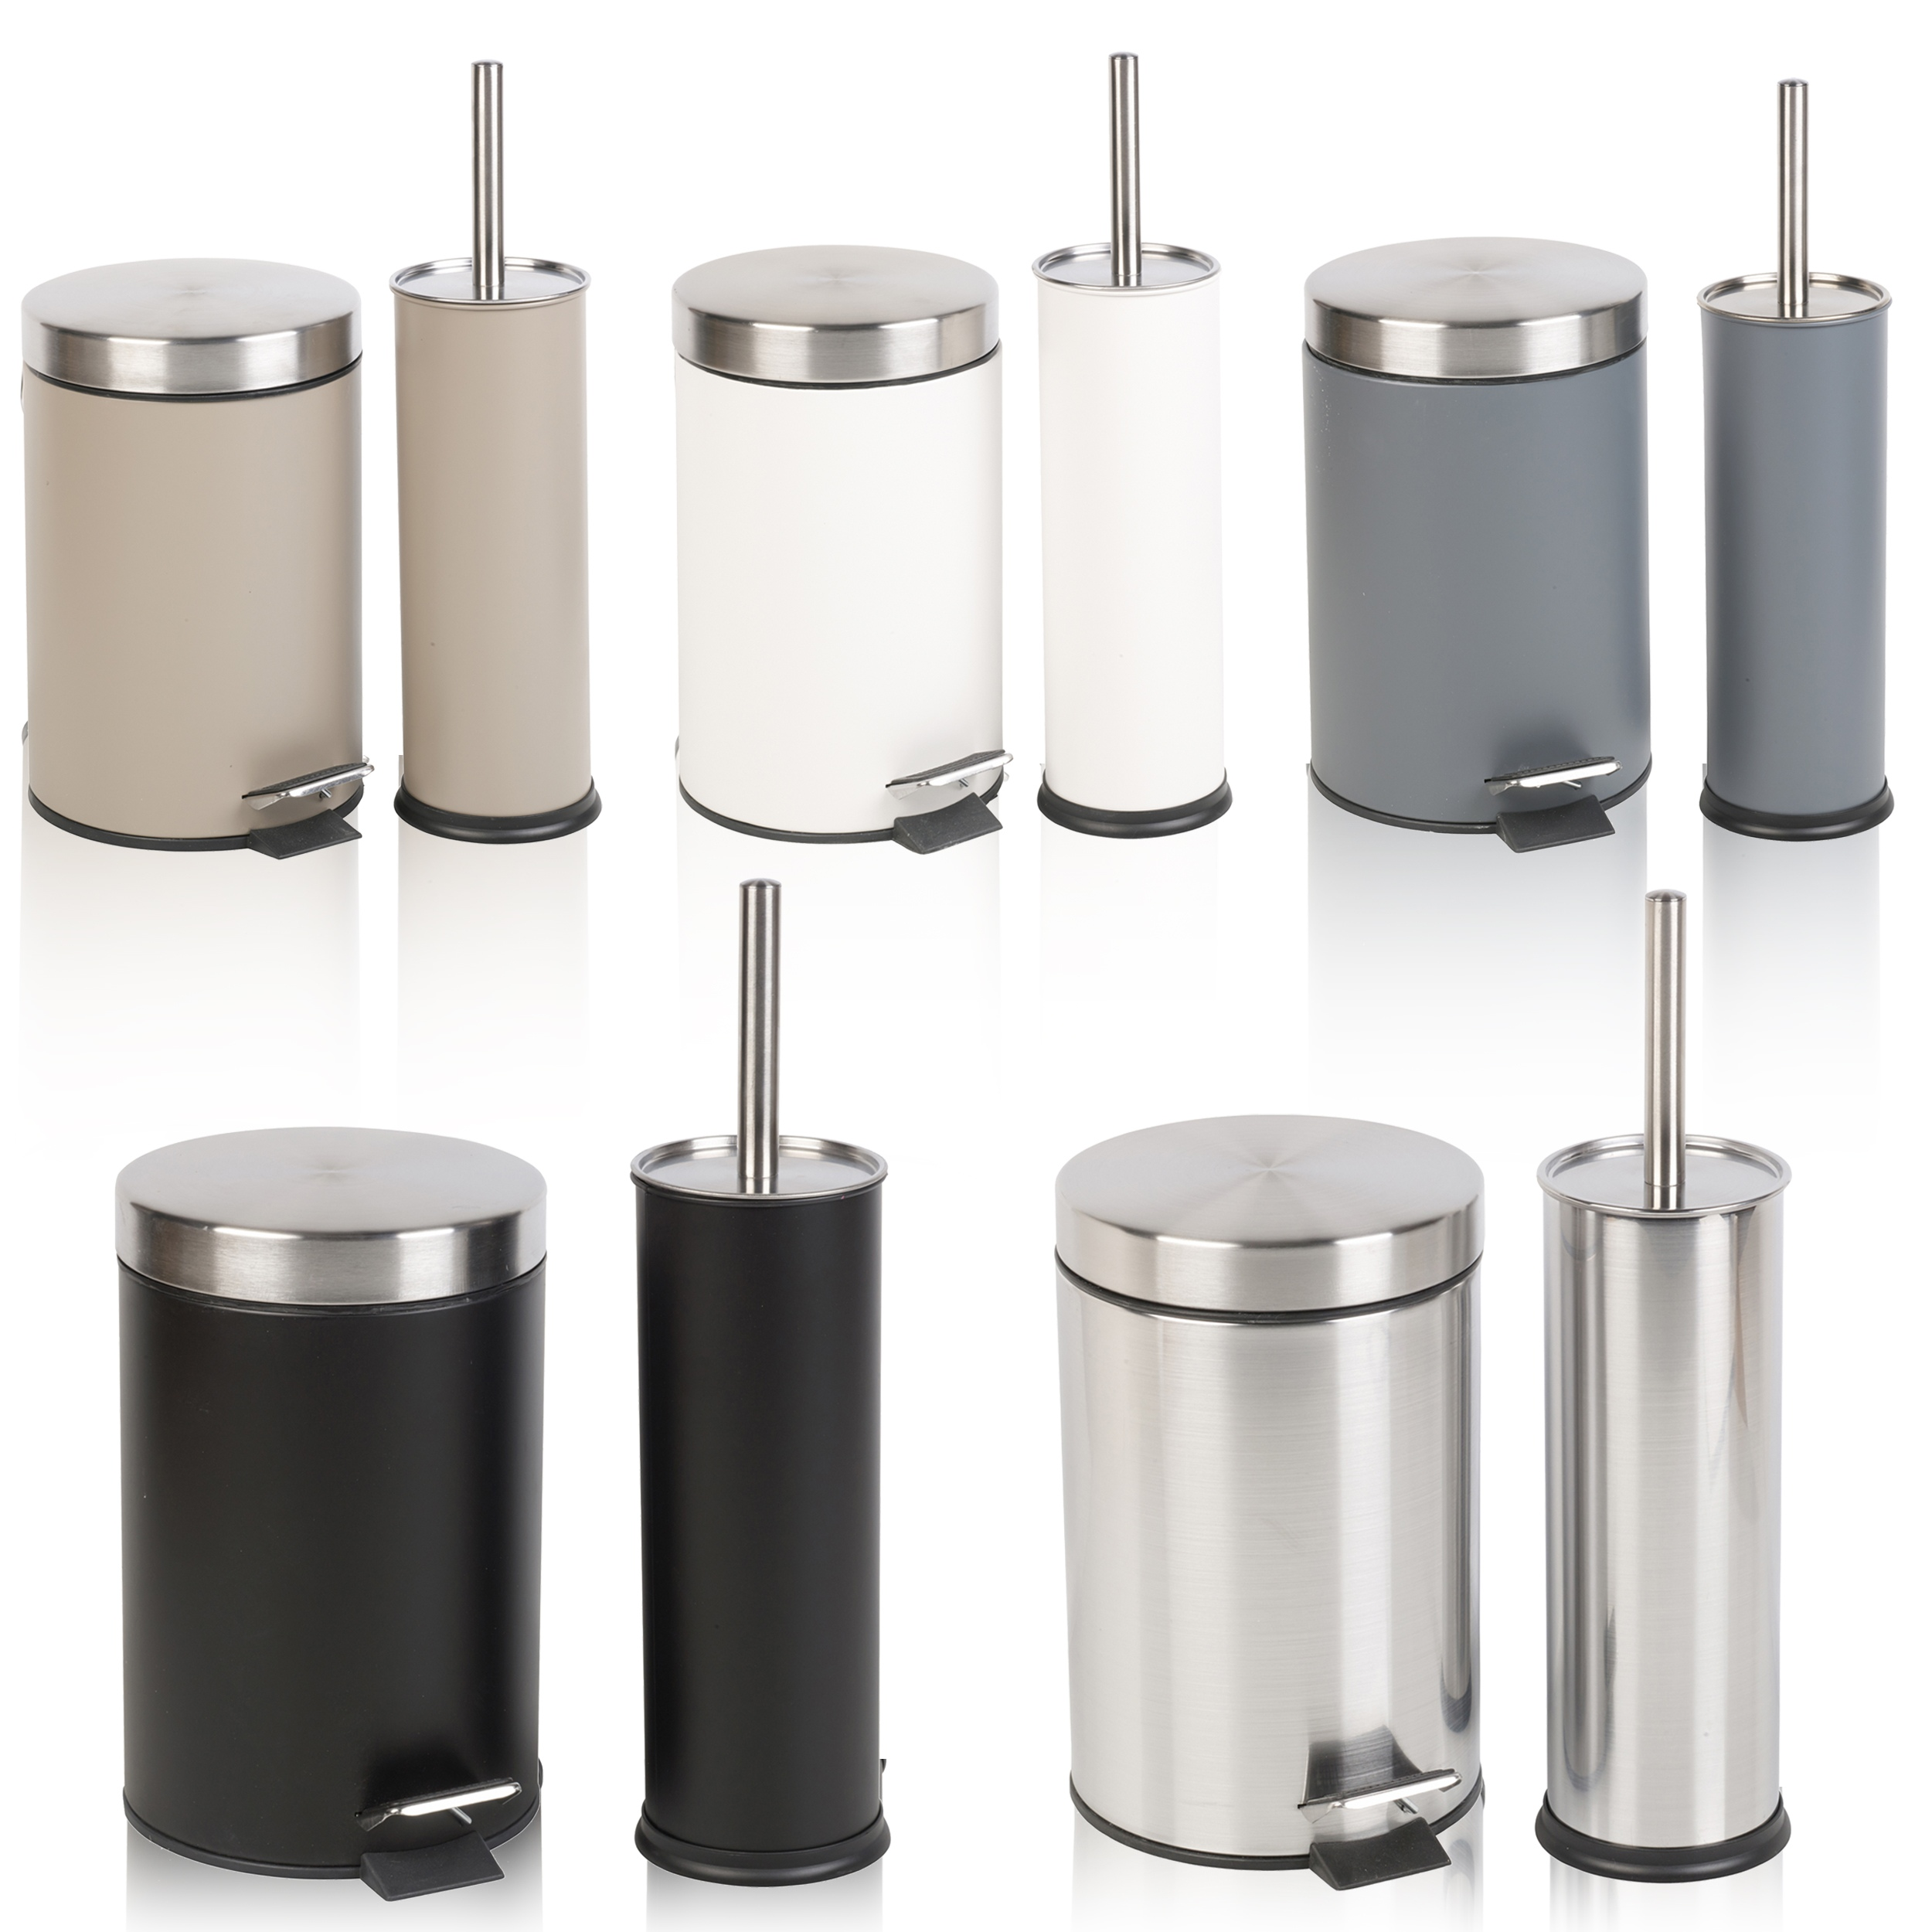 stainless steel bathroom pedal bin toilet brush colour